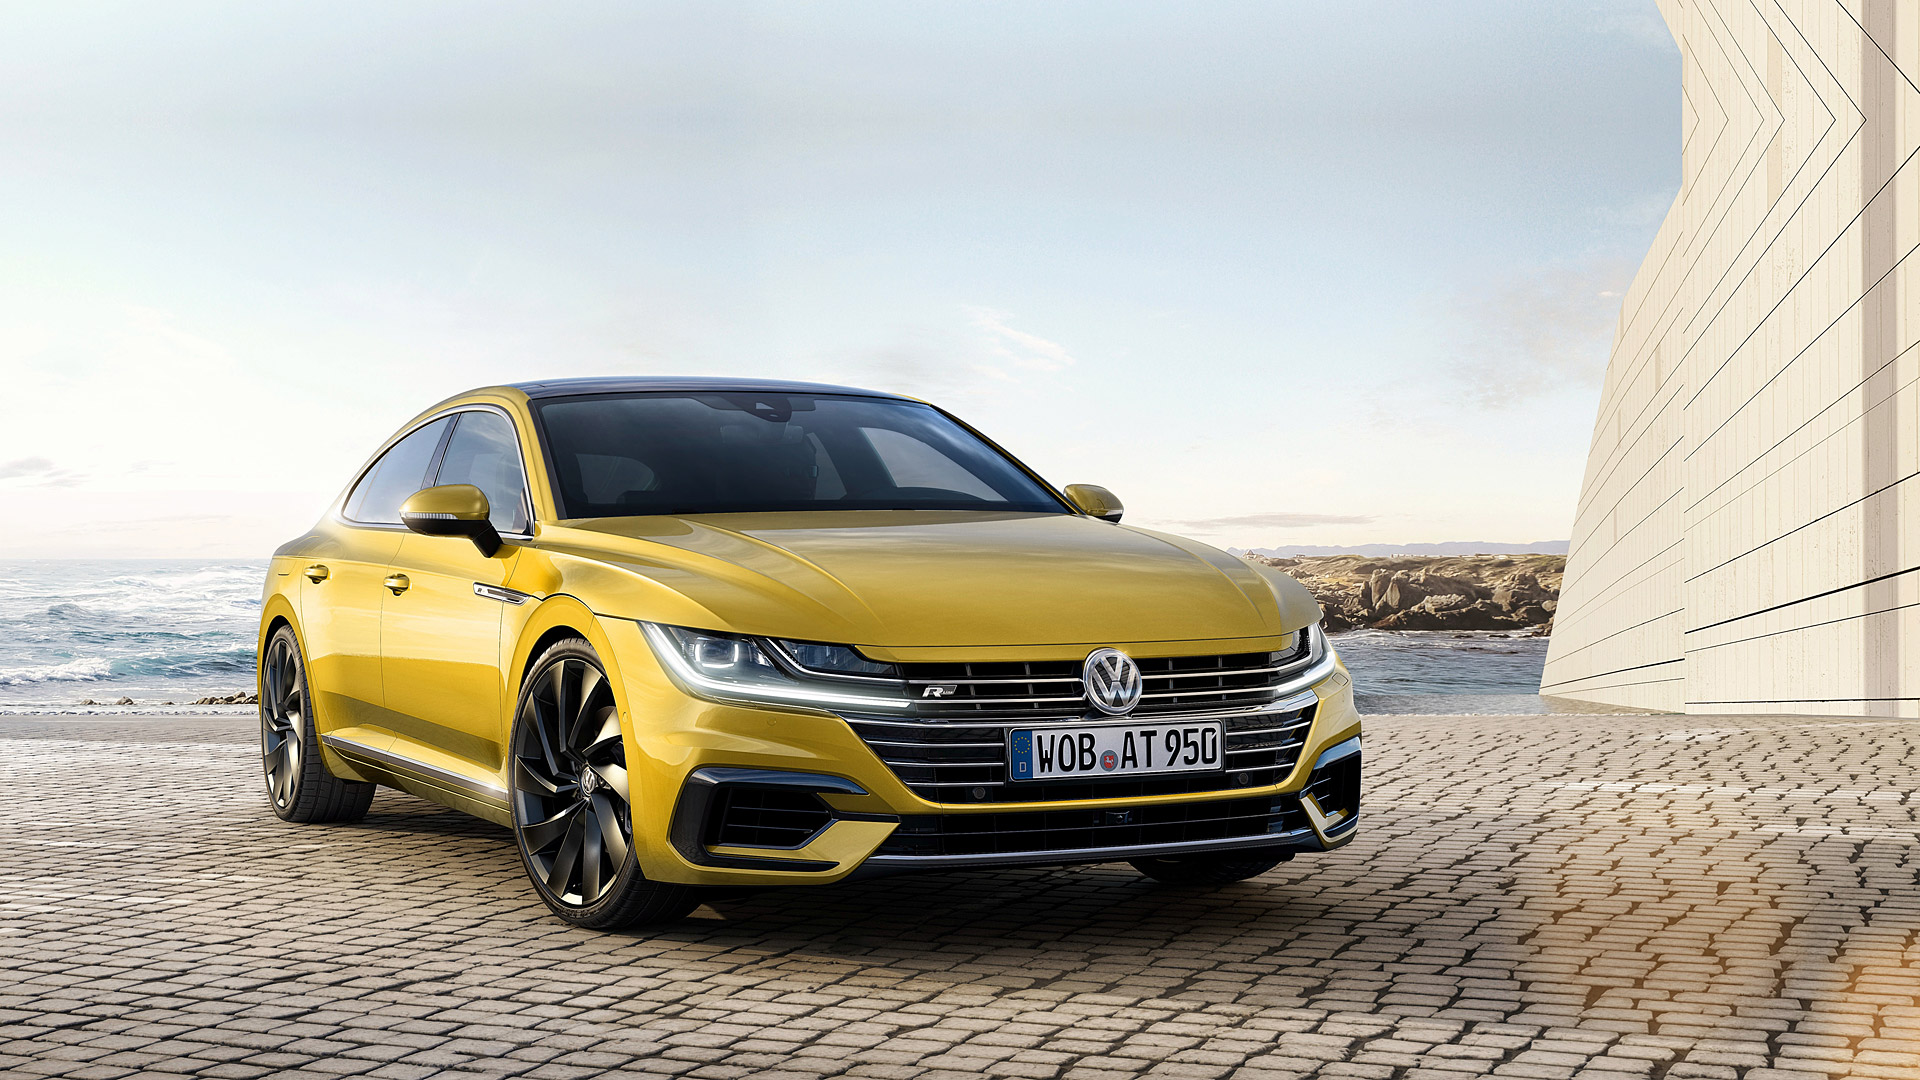 1920x1080 - Volkswagen Arteon Wallpapers 28